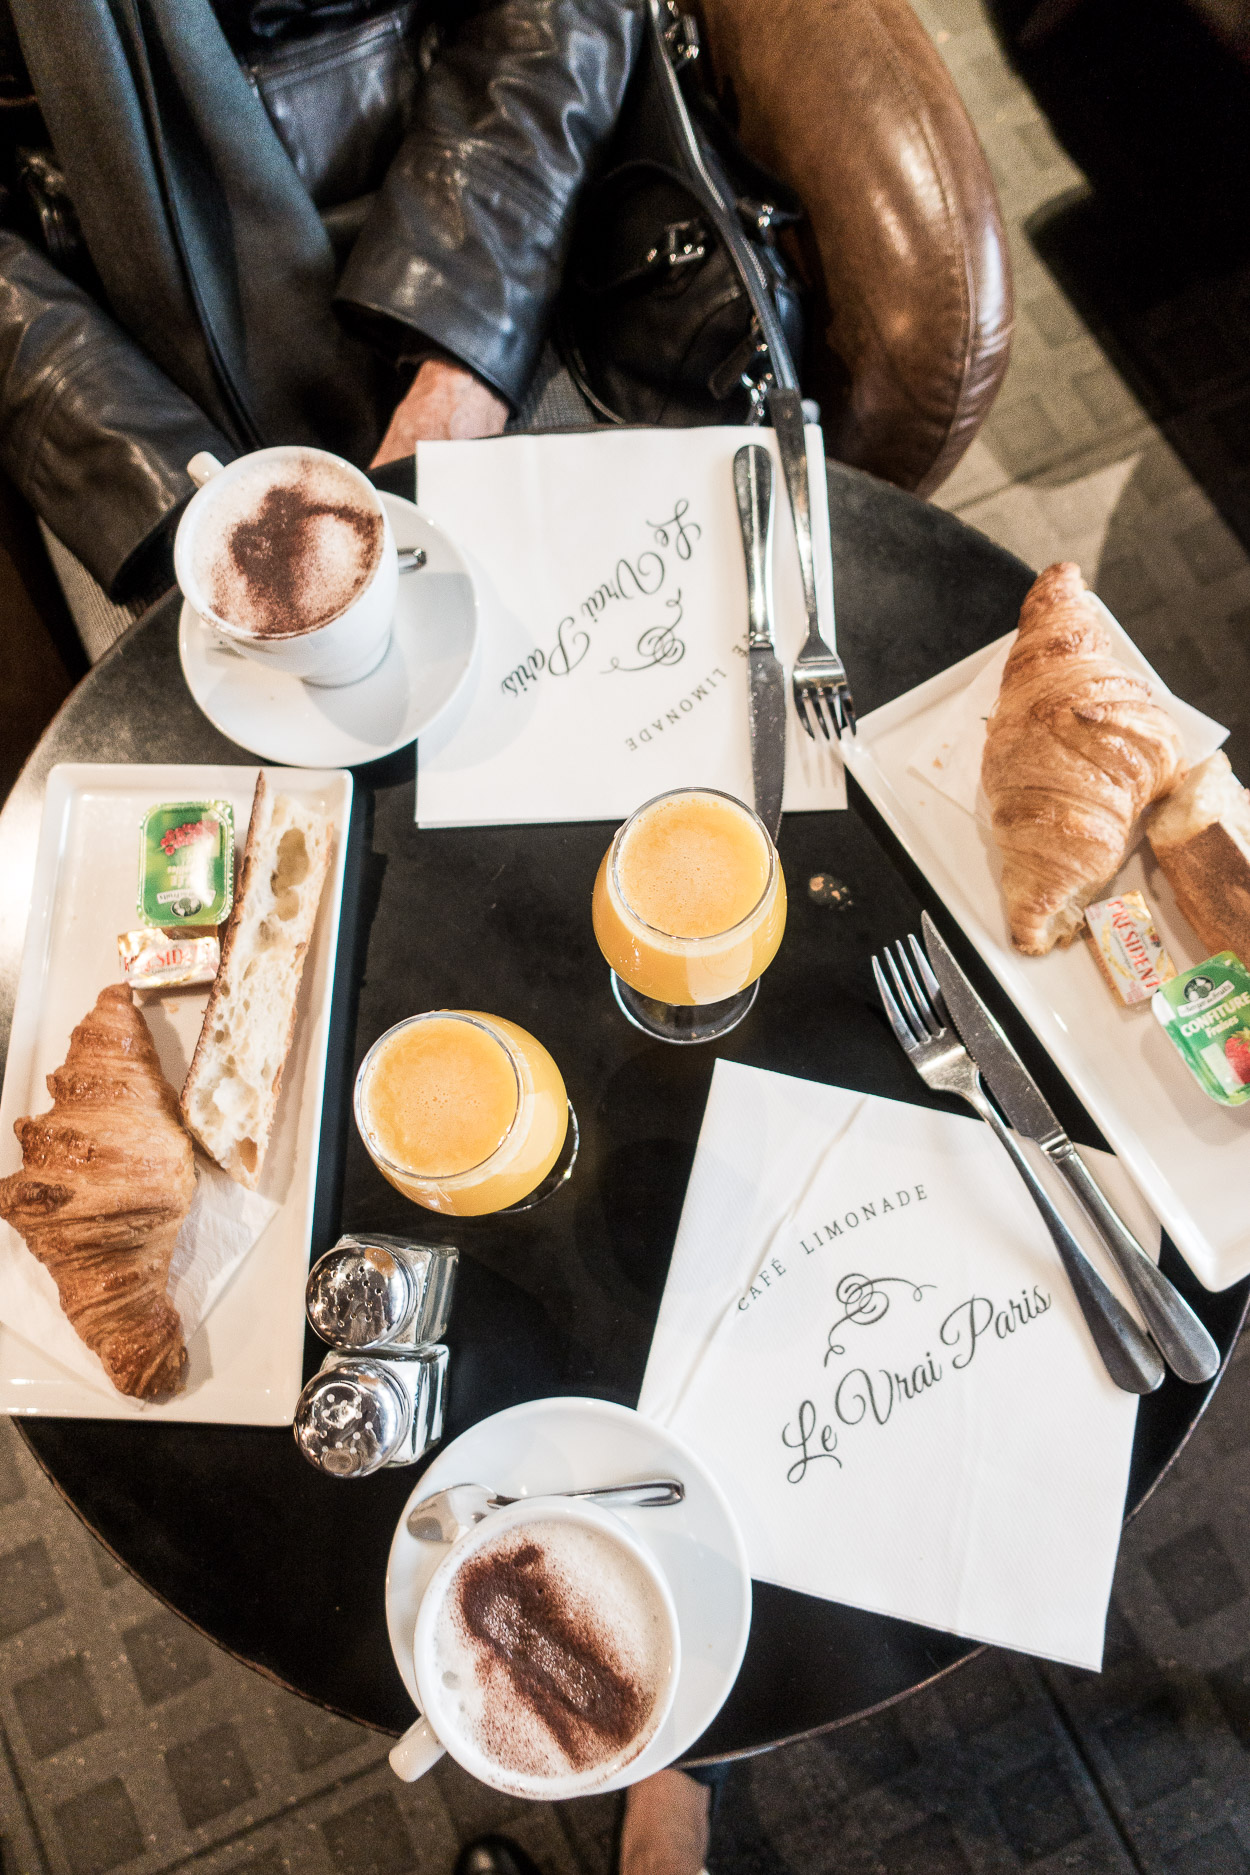 AGlamLifestyle blogger Amanda recommends Le Vrai Paris as one of the best places to eat in Montmartre for breakfast